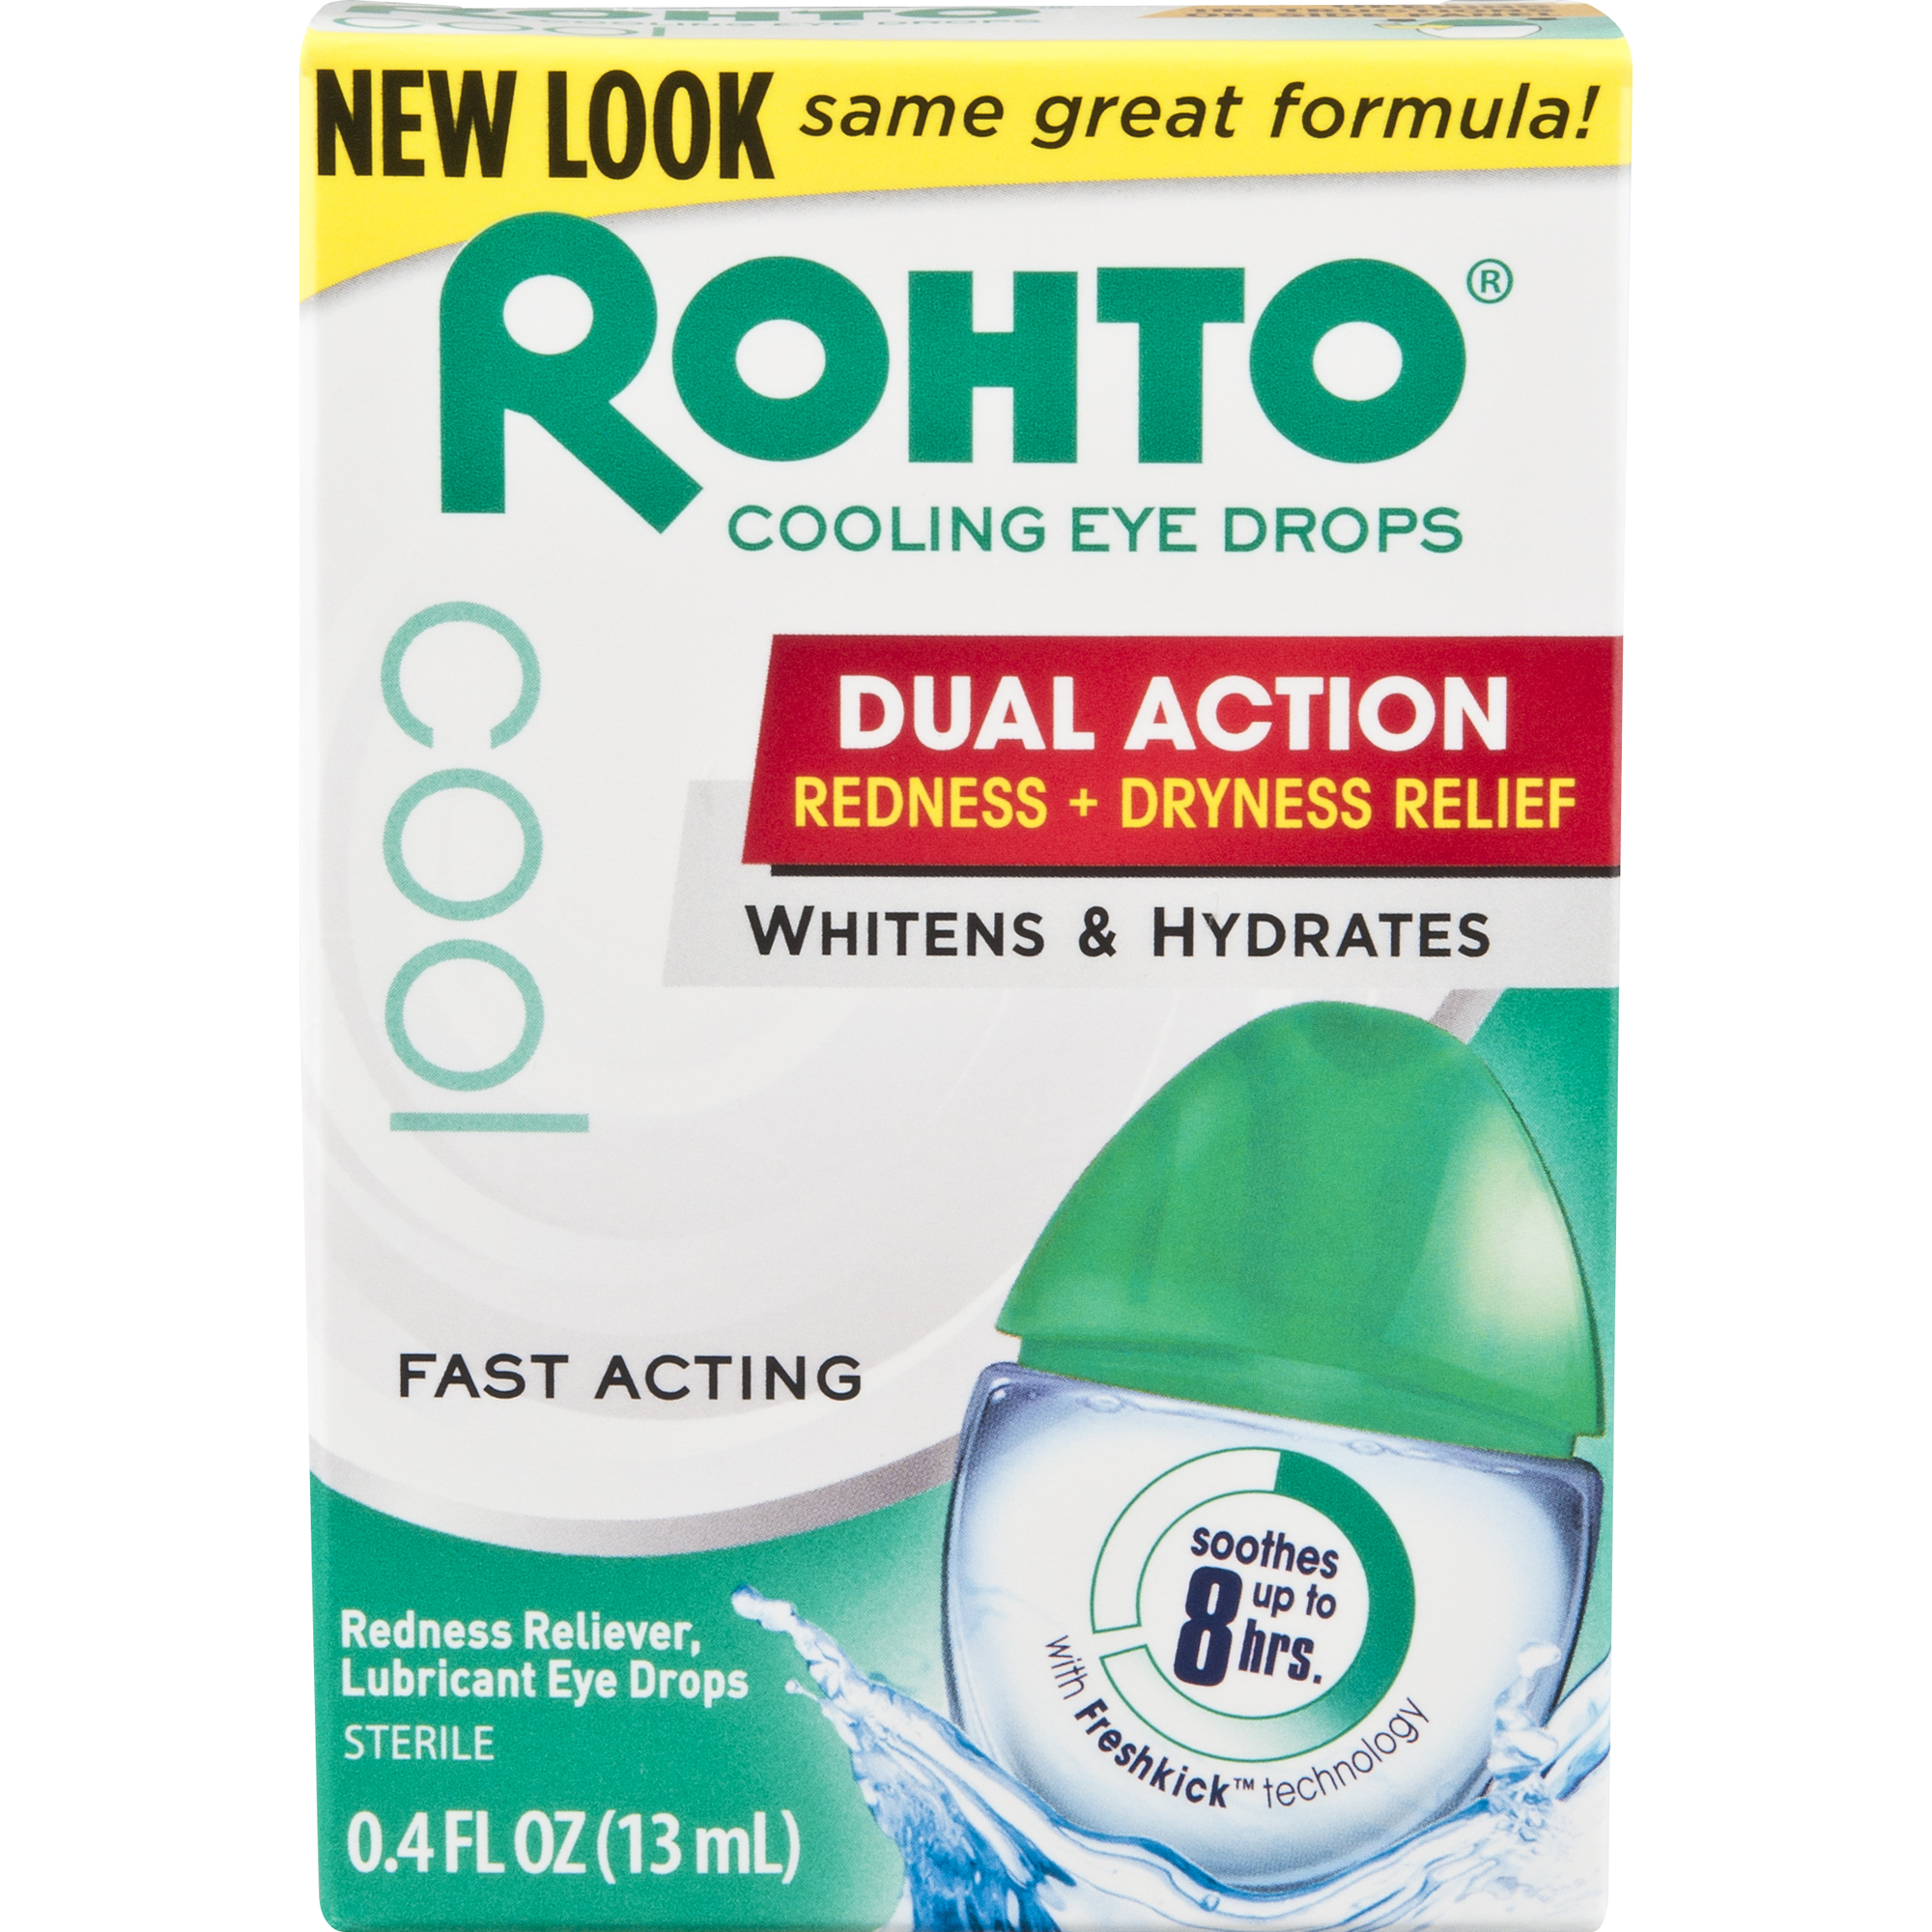 Rohto Cooling Eye Drops, Dual Action Redness + Dryness Relief, 0.4 fl. oz.